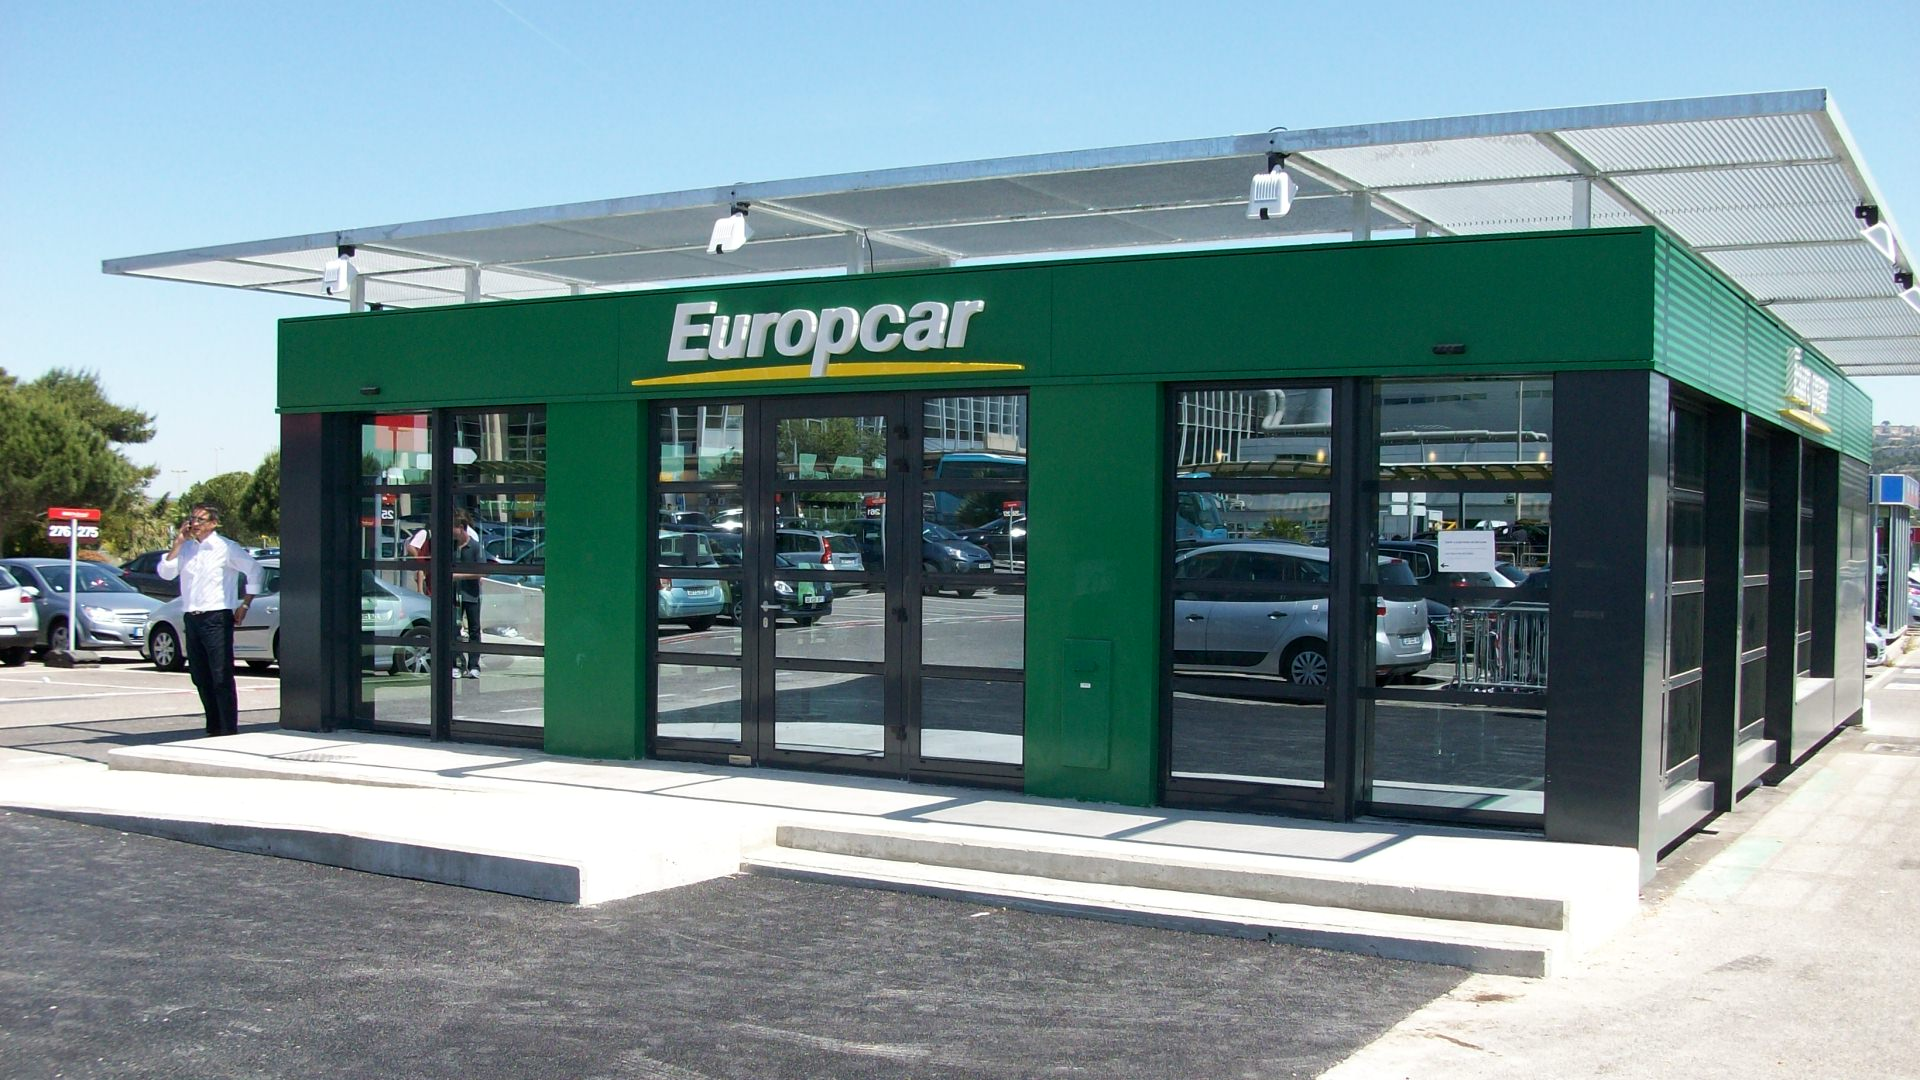 europcar le groupe finalise le rachat de goldcar trading sat. Black Bedroom Furniture Sets. Home Design Ideas